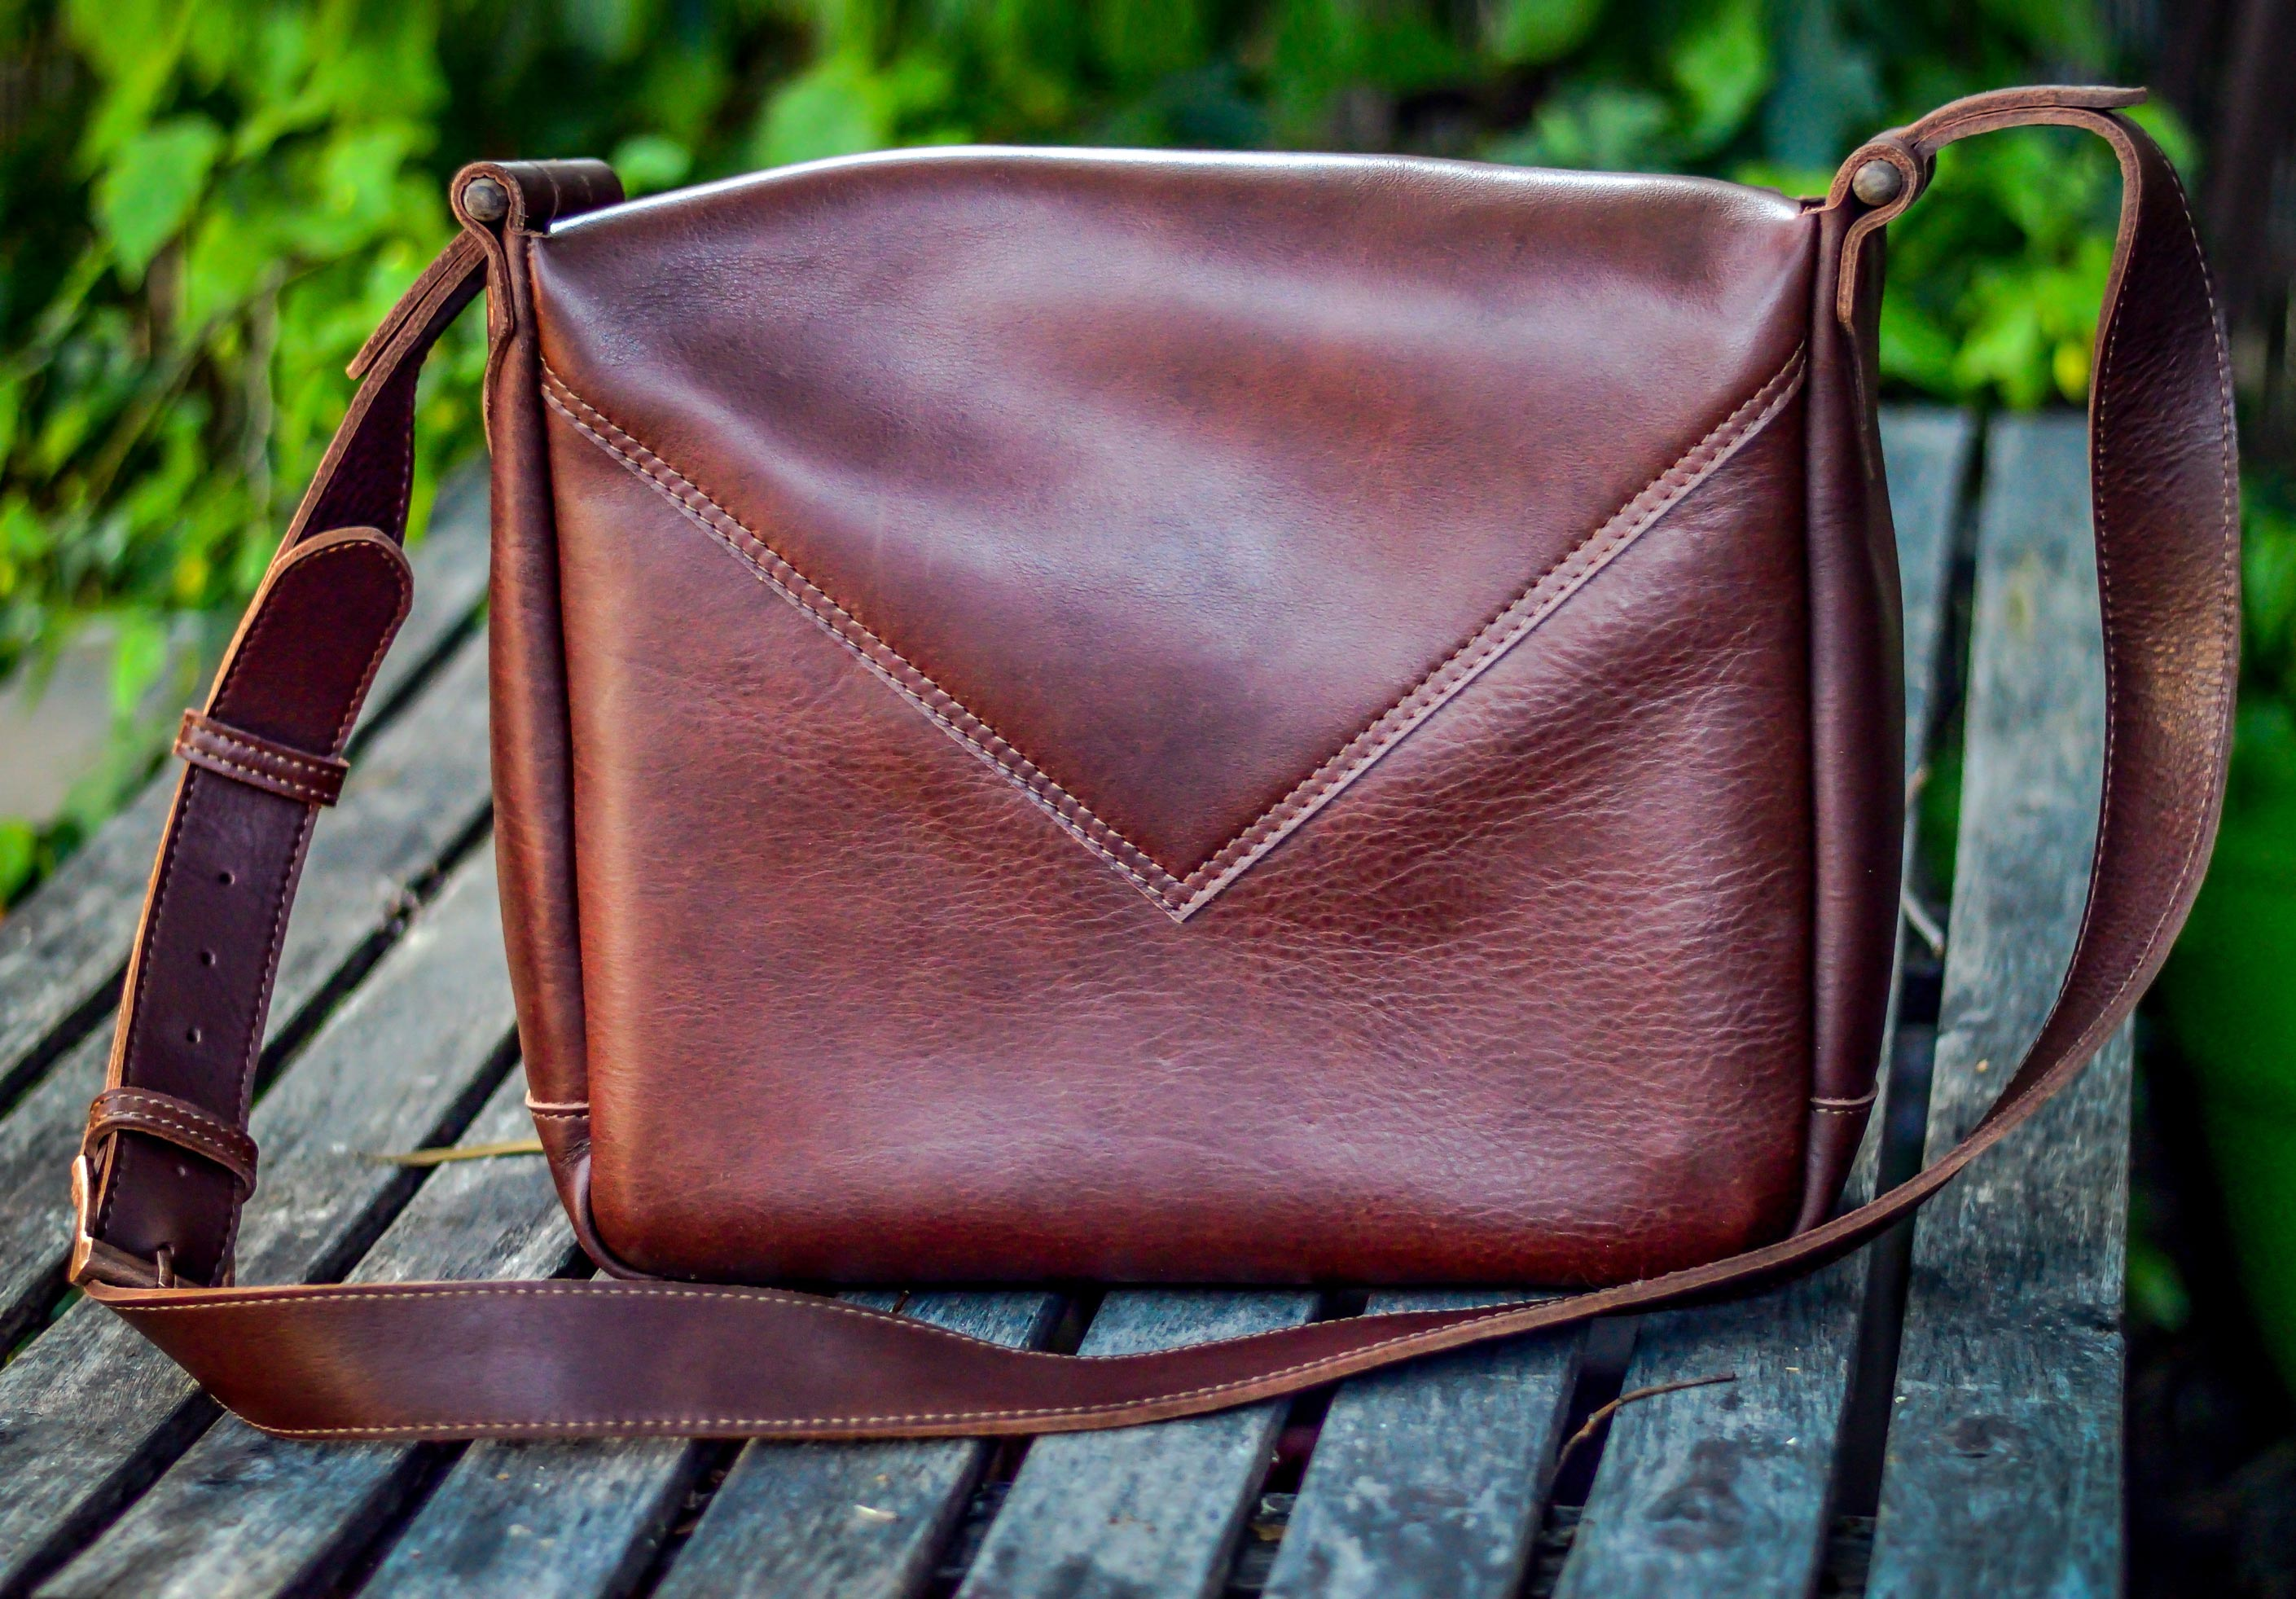 Shop Luxury Style - Men's Leather Field Bag made for Global Travels